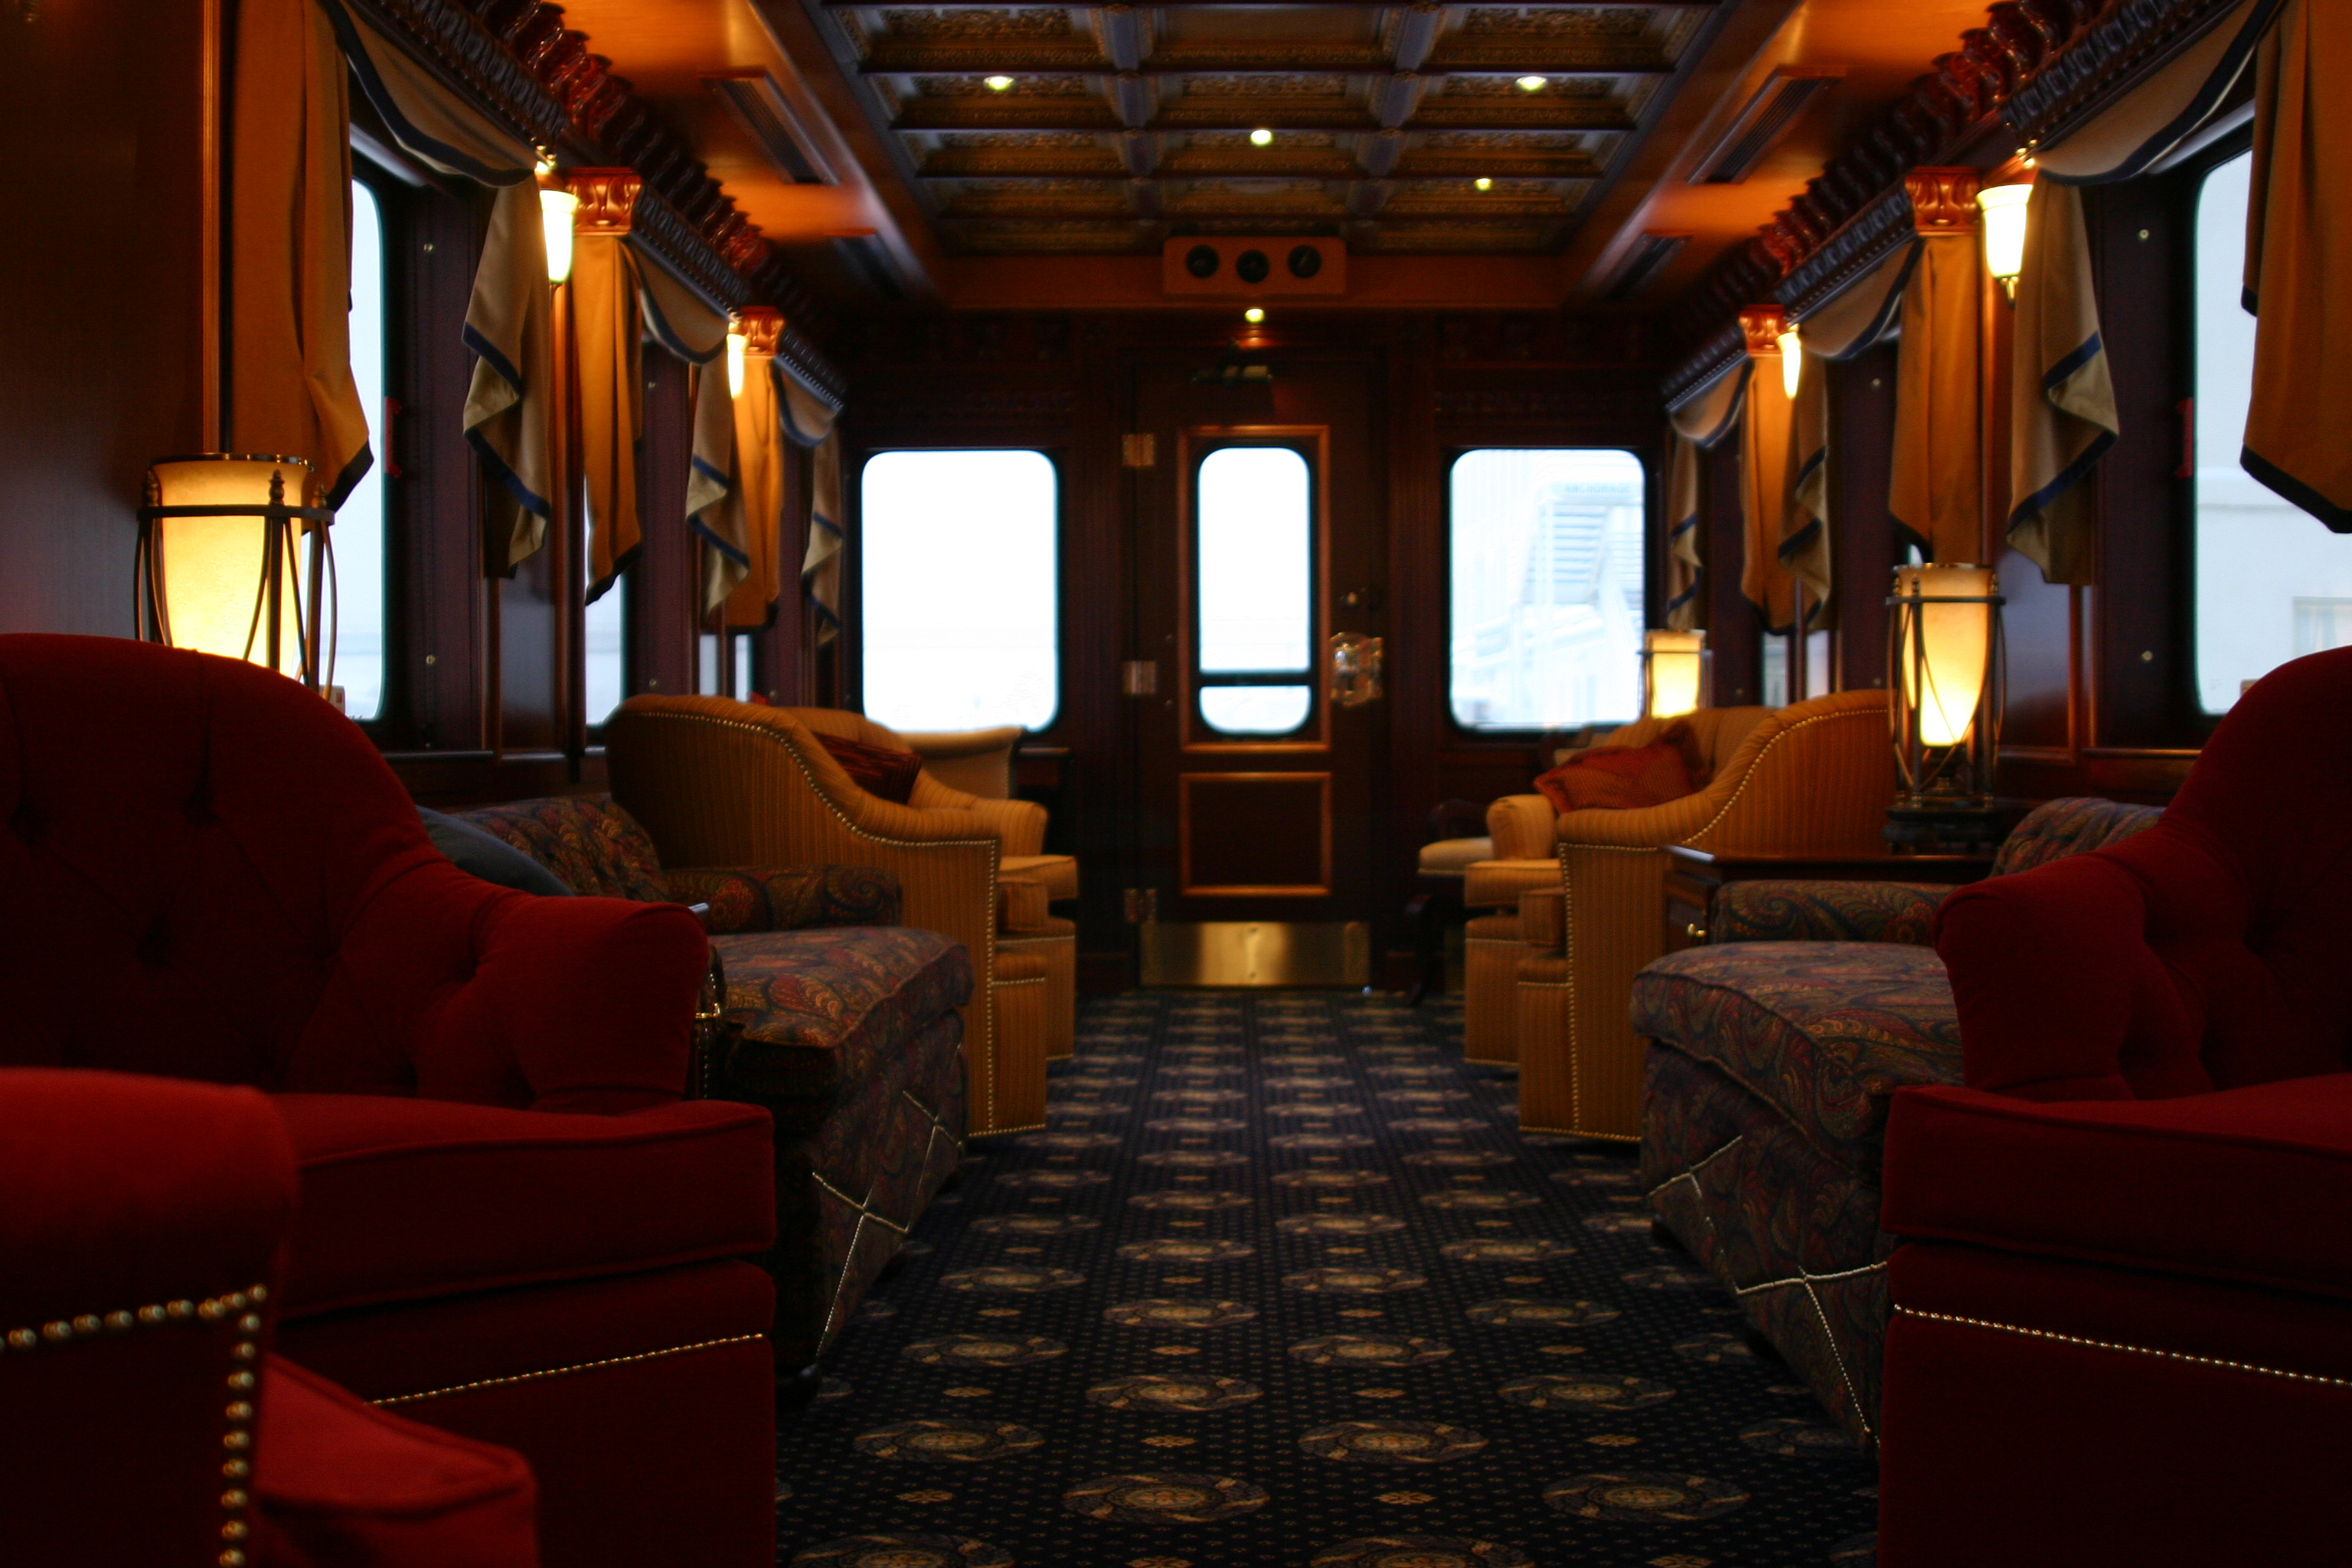 win a trip for 15 friends in the alaska railroad denali car alaska public media. Black Bedroom Furniture Sets. Home Design Ideas